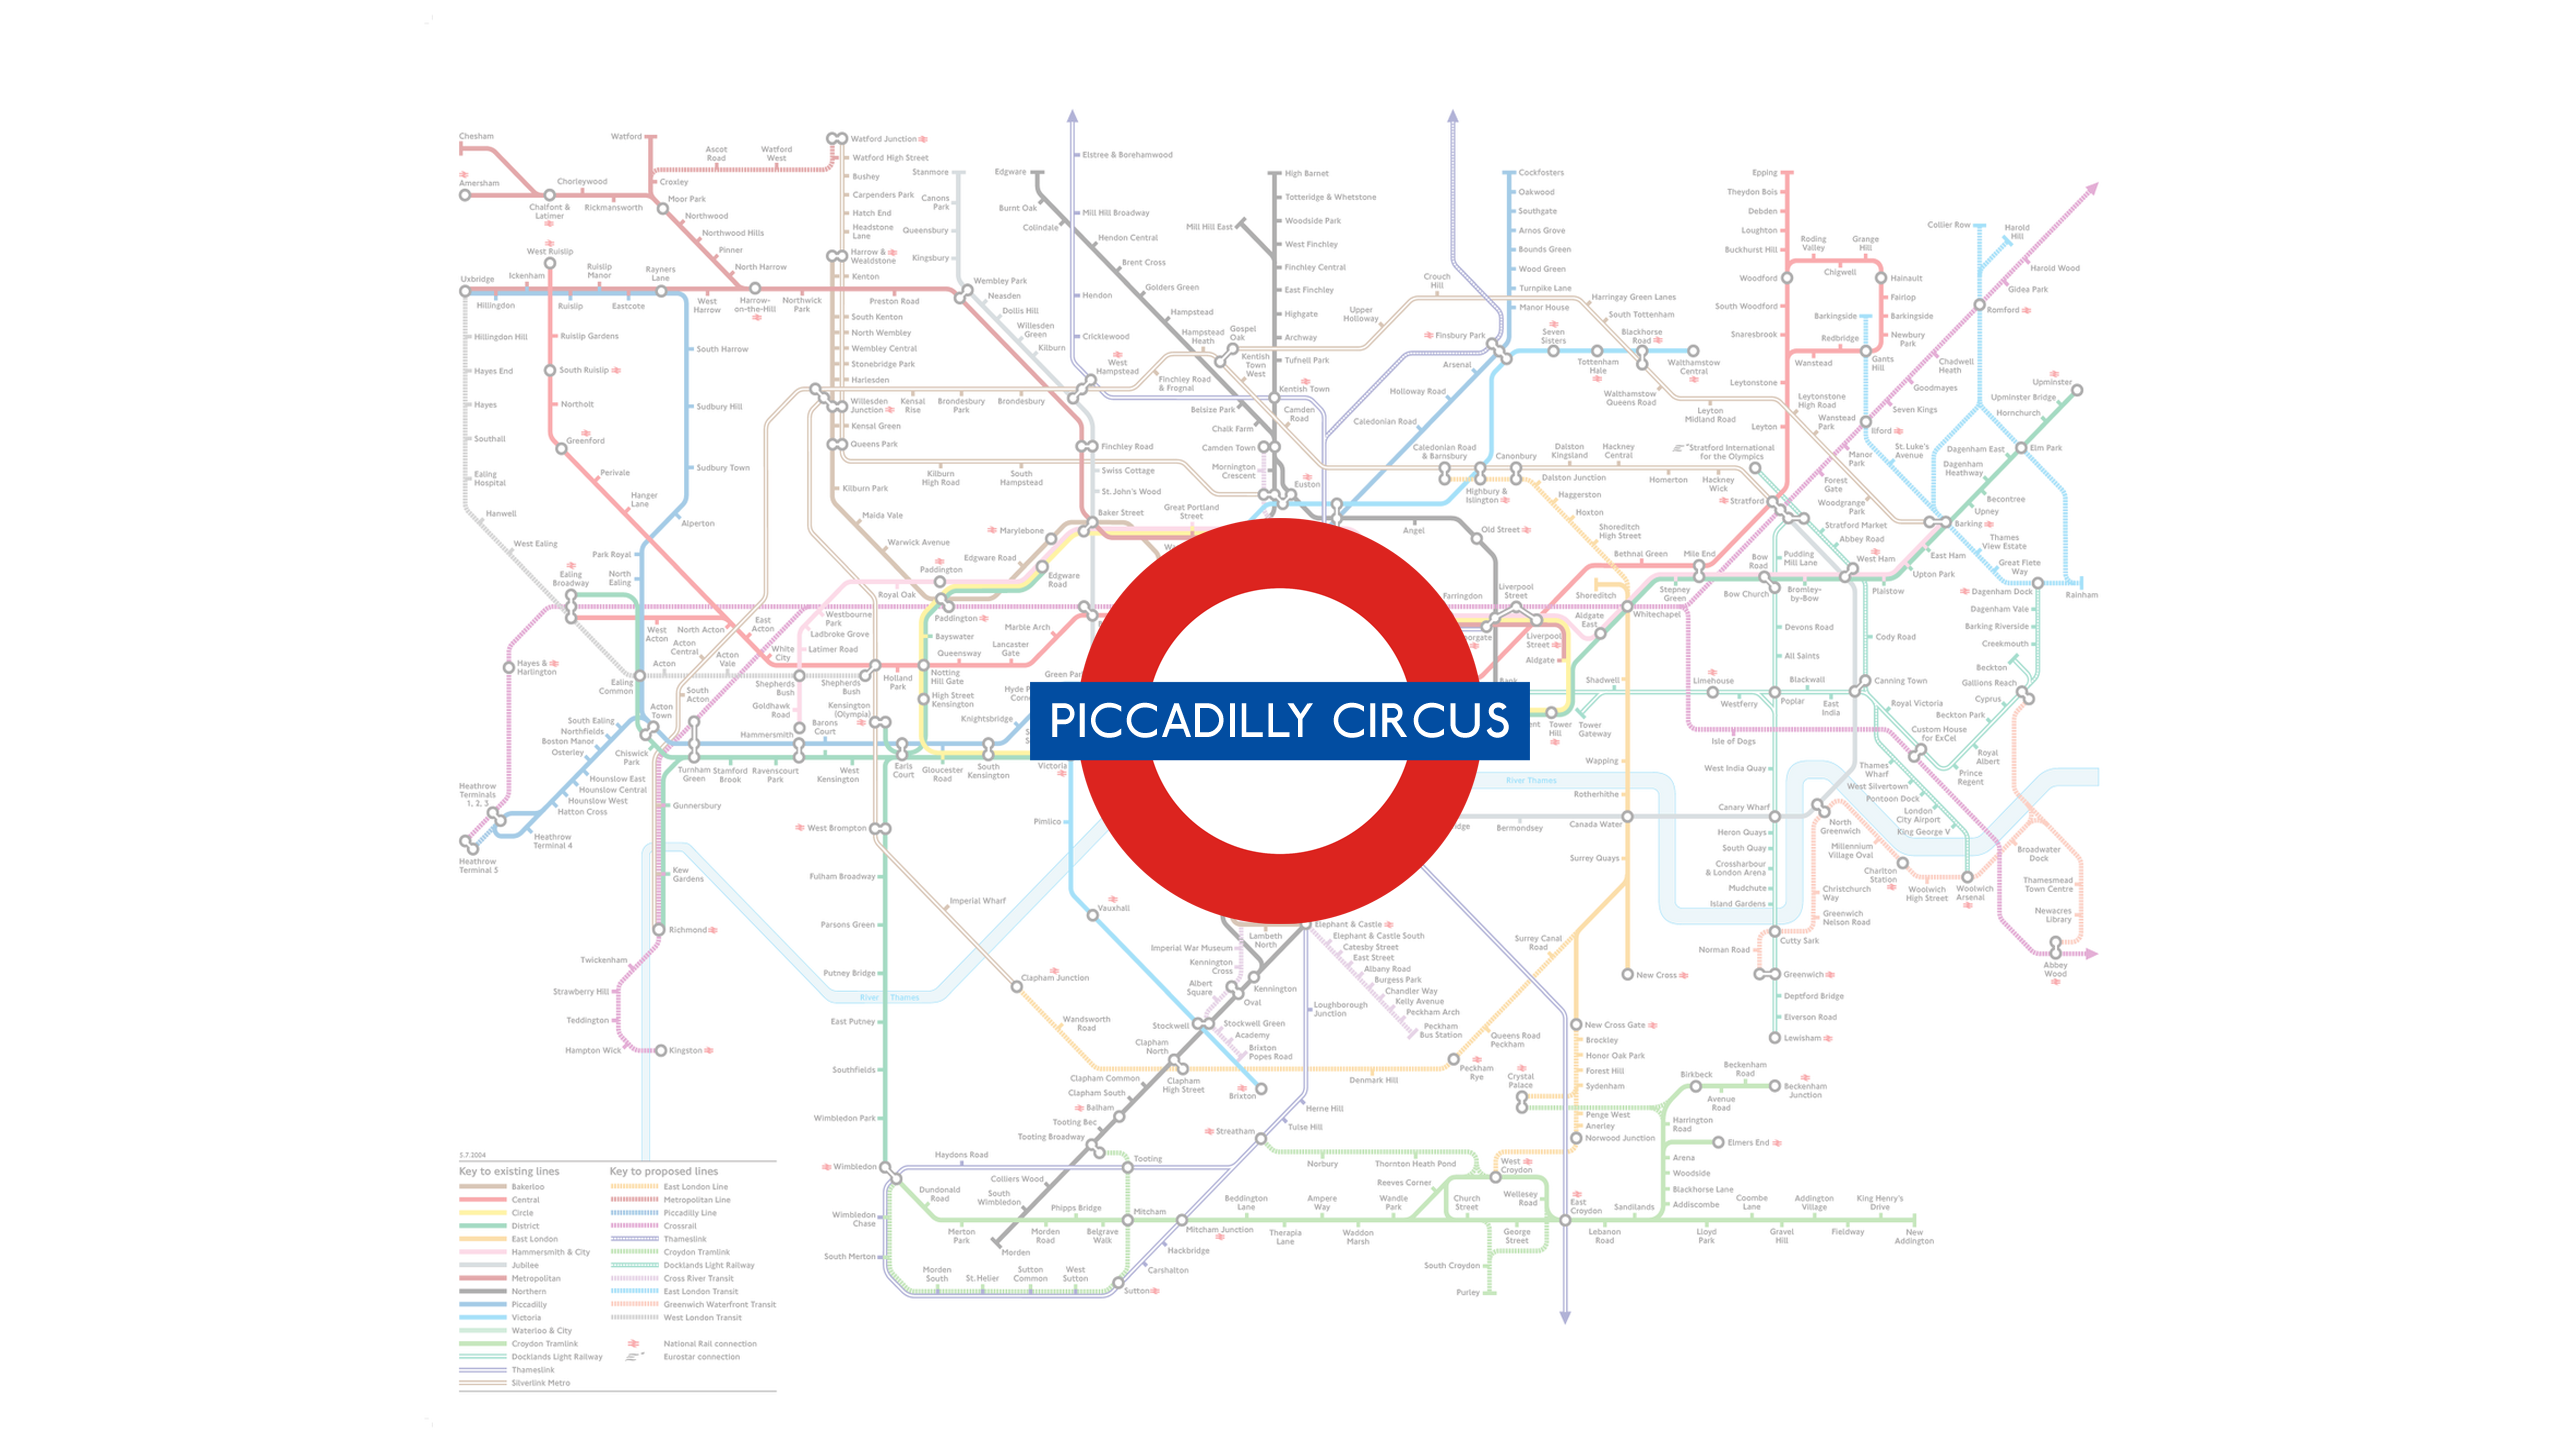 Piccadilly Circus (Map)